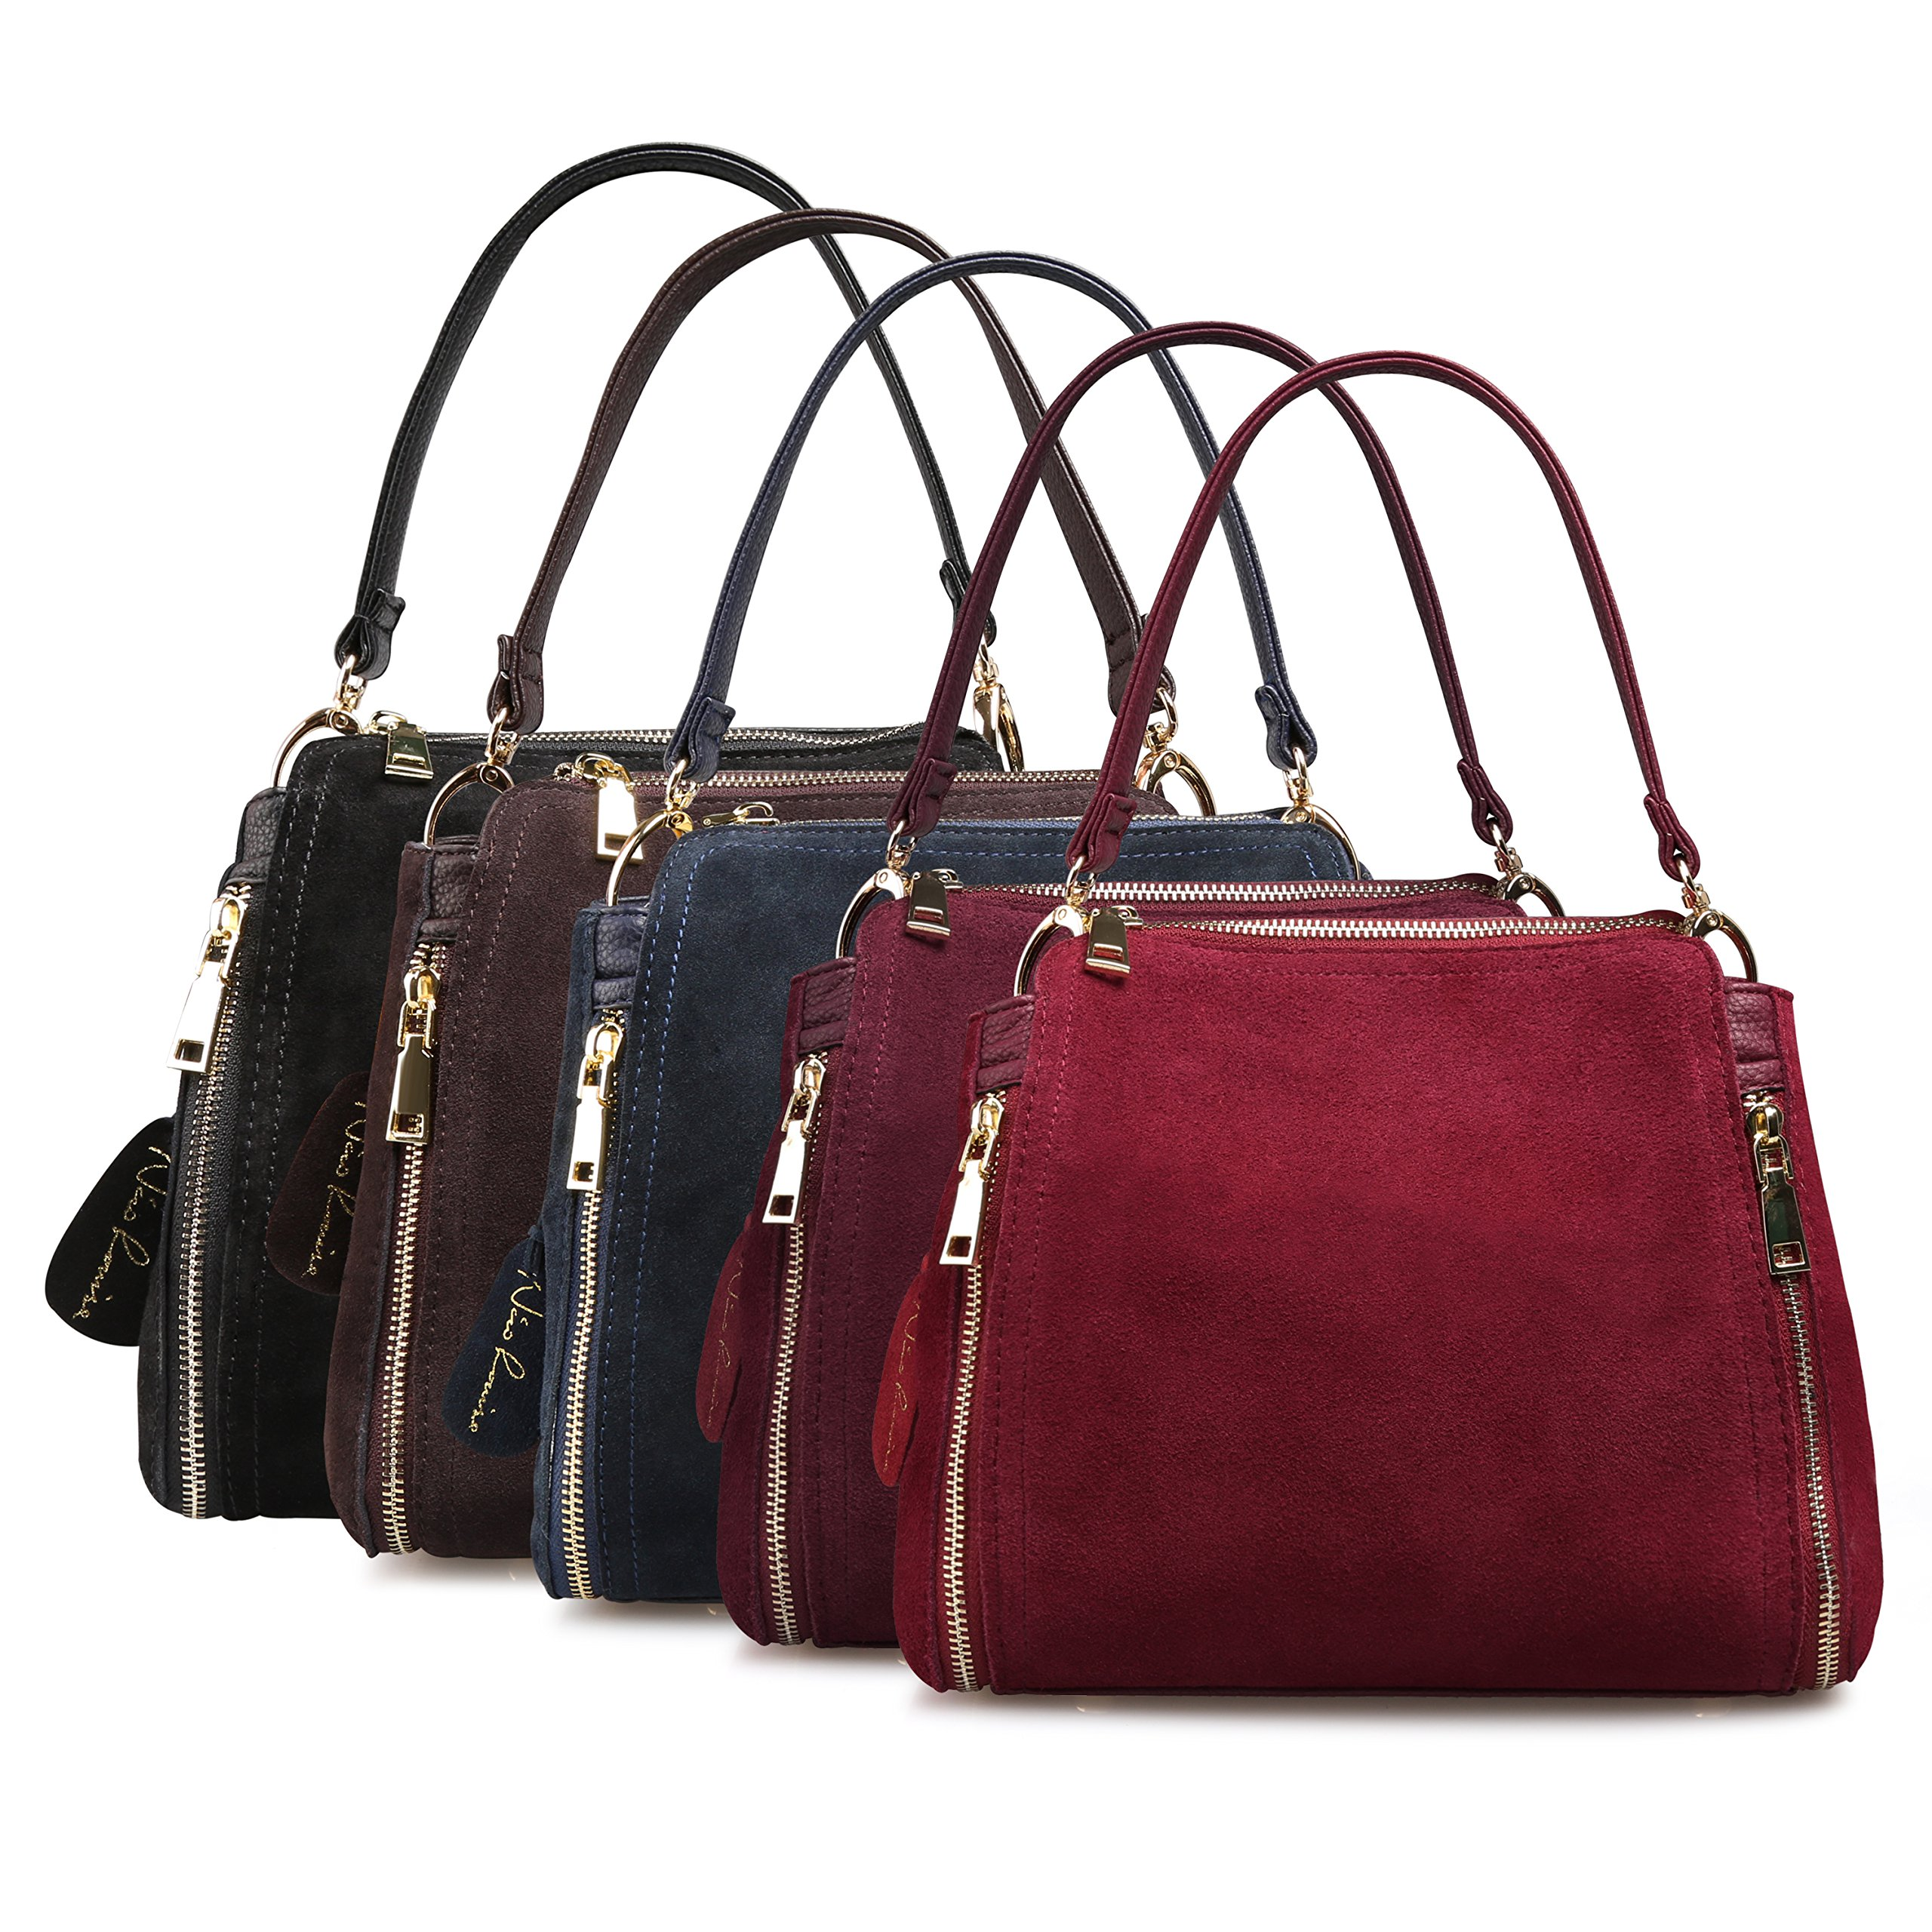 Women Real Suede Leather Shoulder Bag Leisure Doctor Handbag For Female Girls Top-handle (Burgundy) by Nico louise (Image #7)